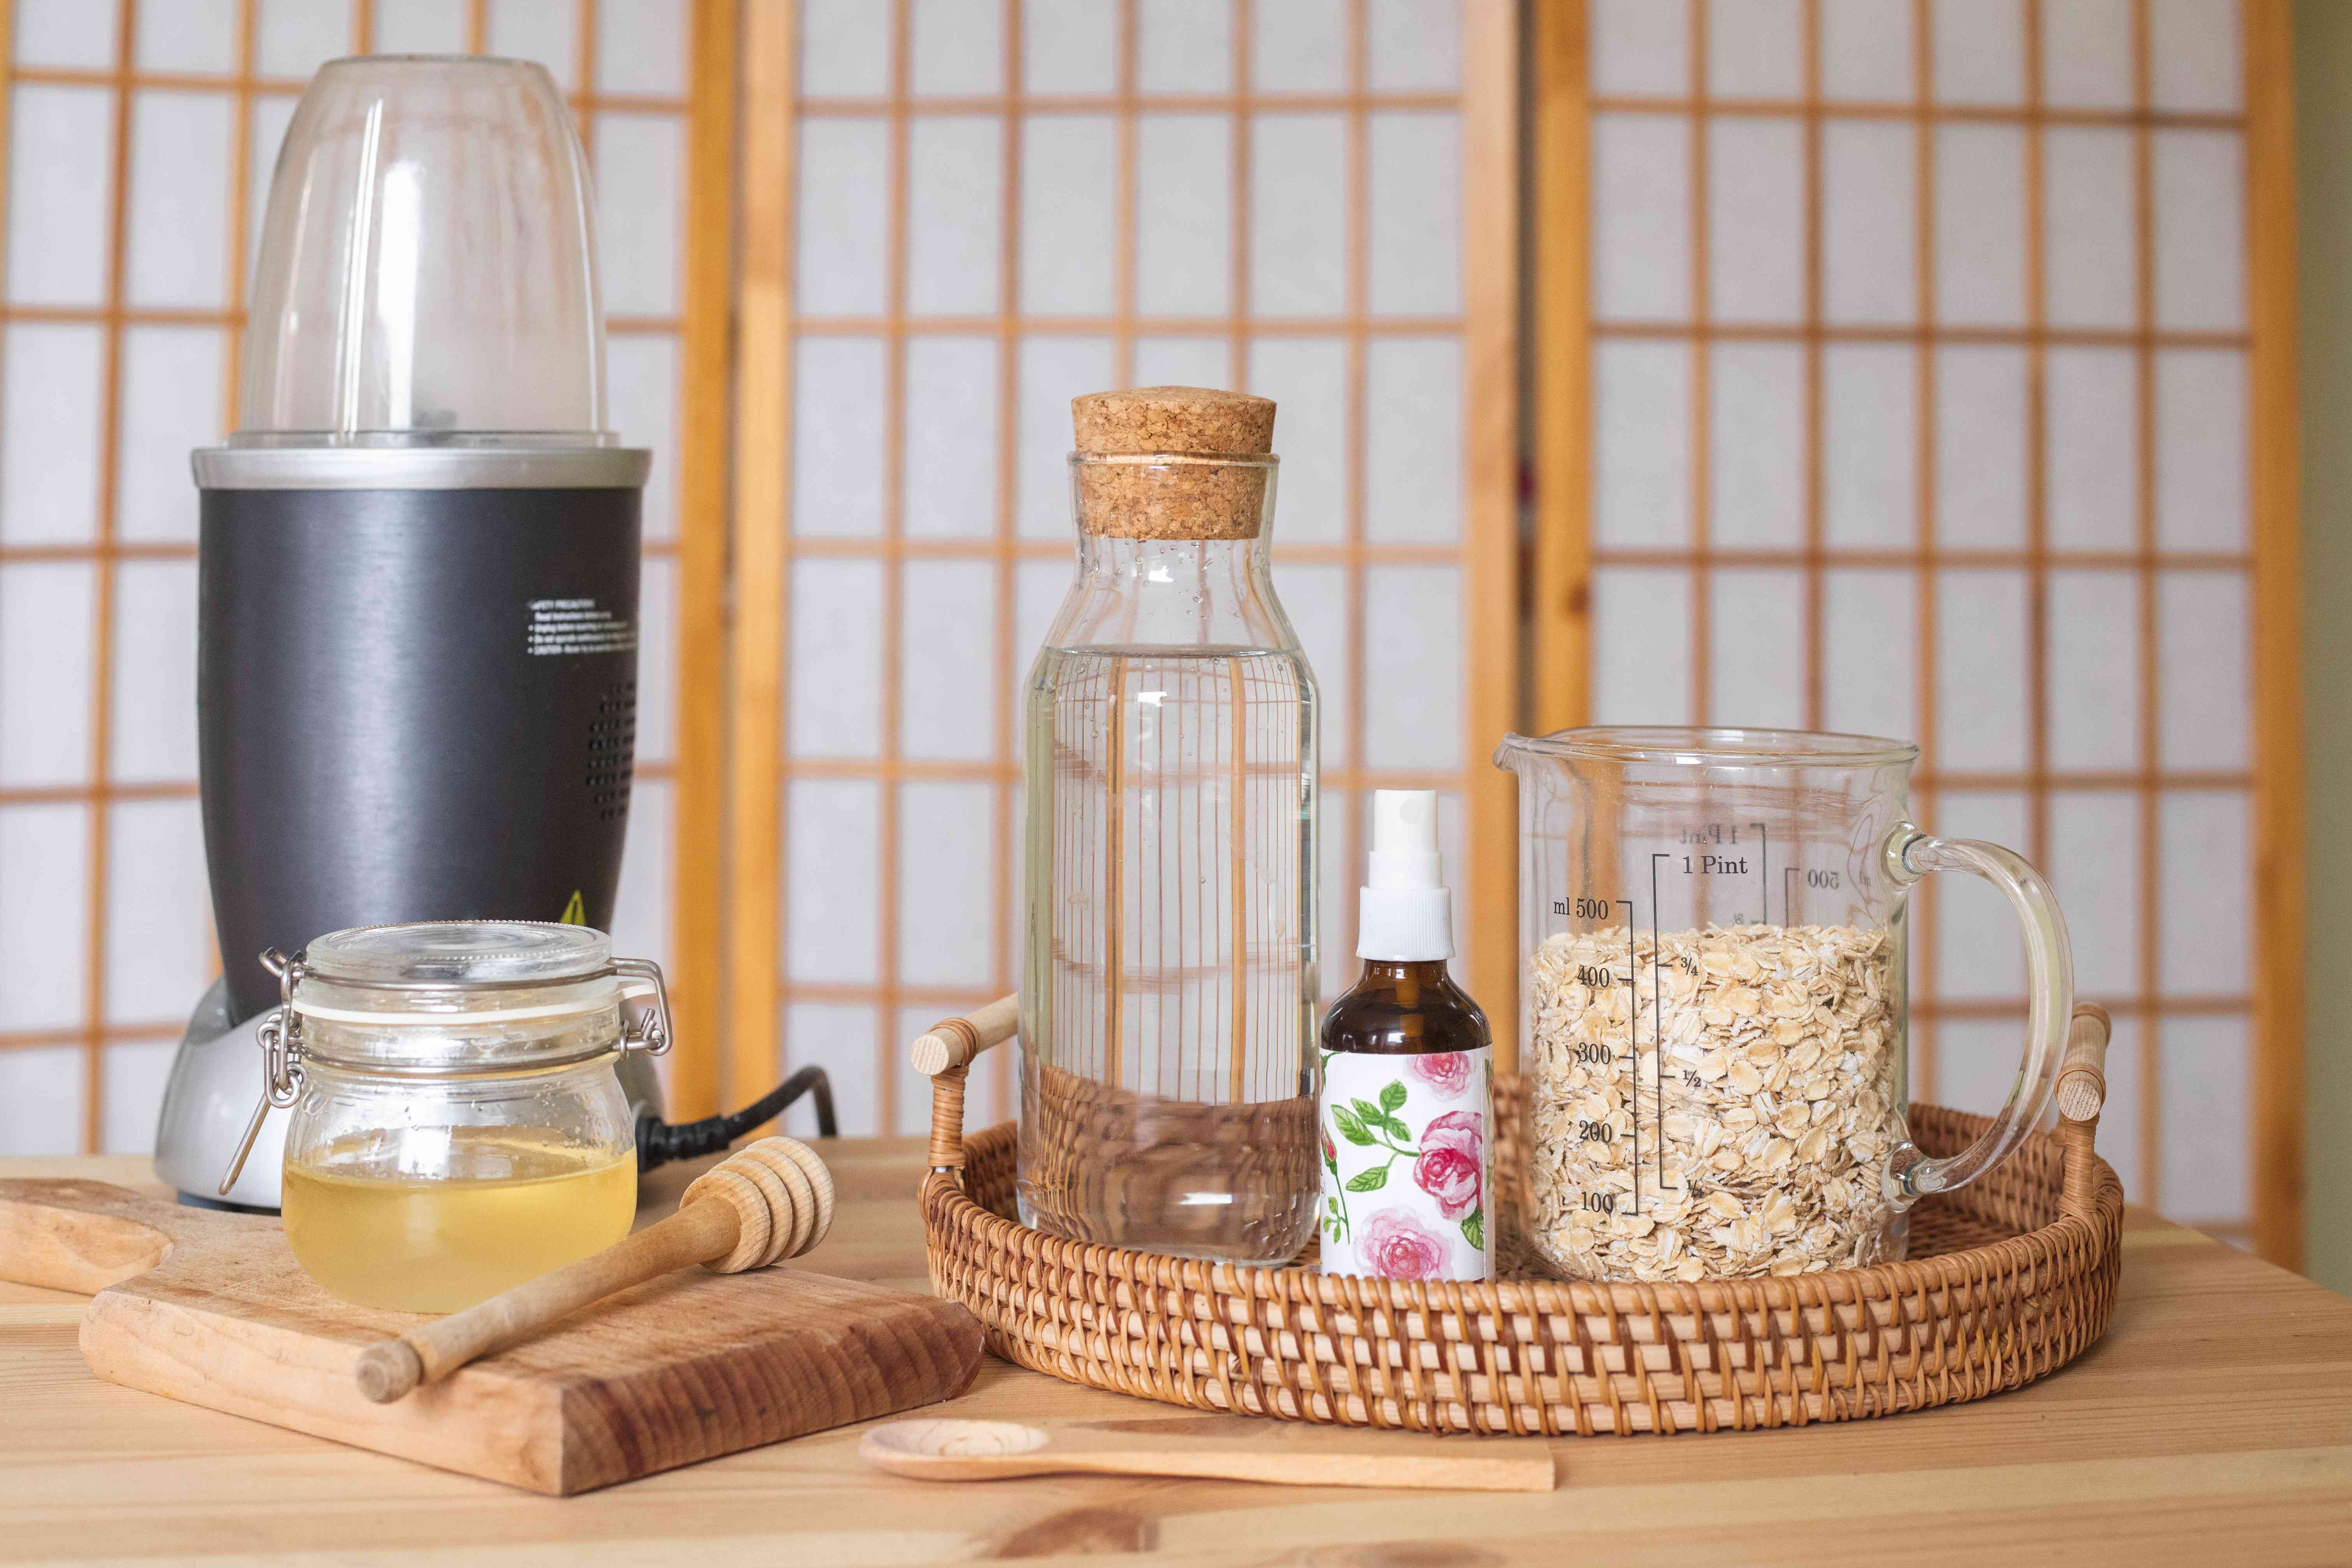 DIY setup for colloidal oatmeal including blender, honey, rosewater, and rolled oats